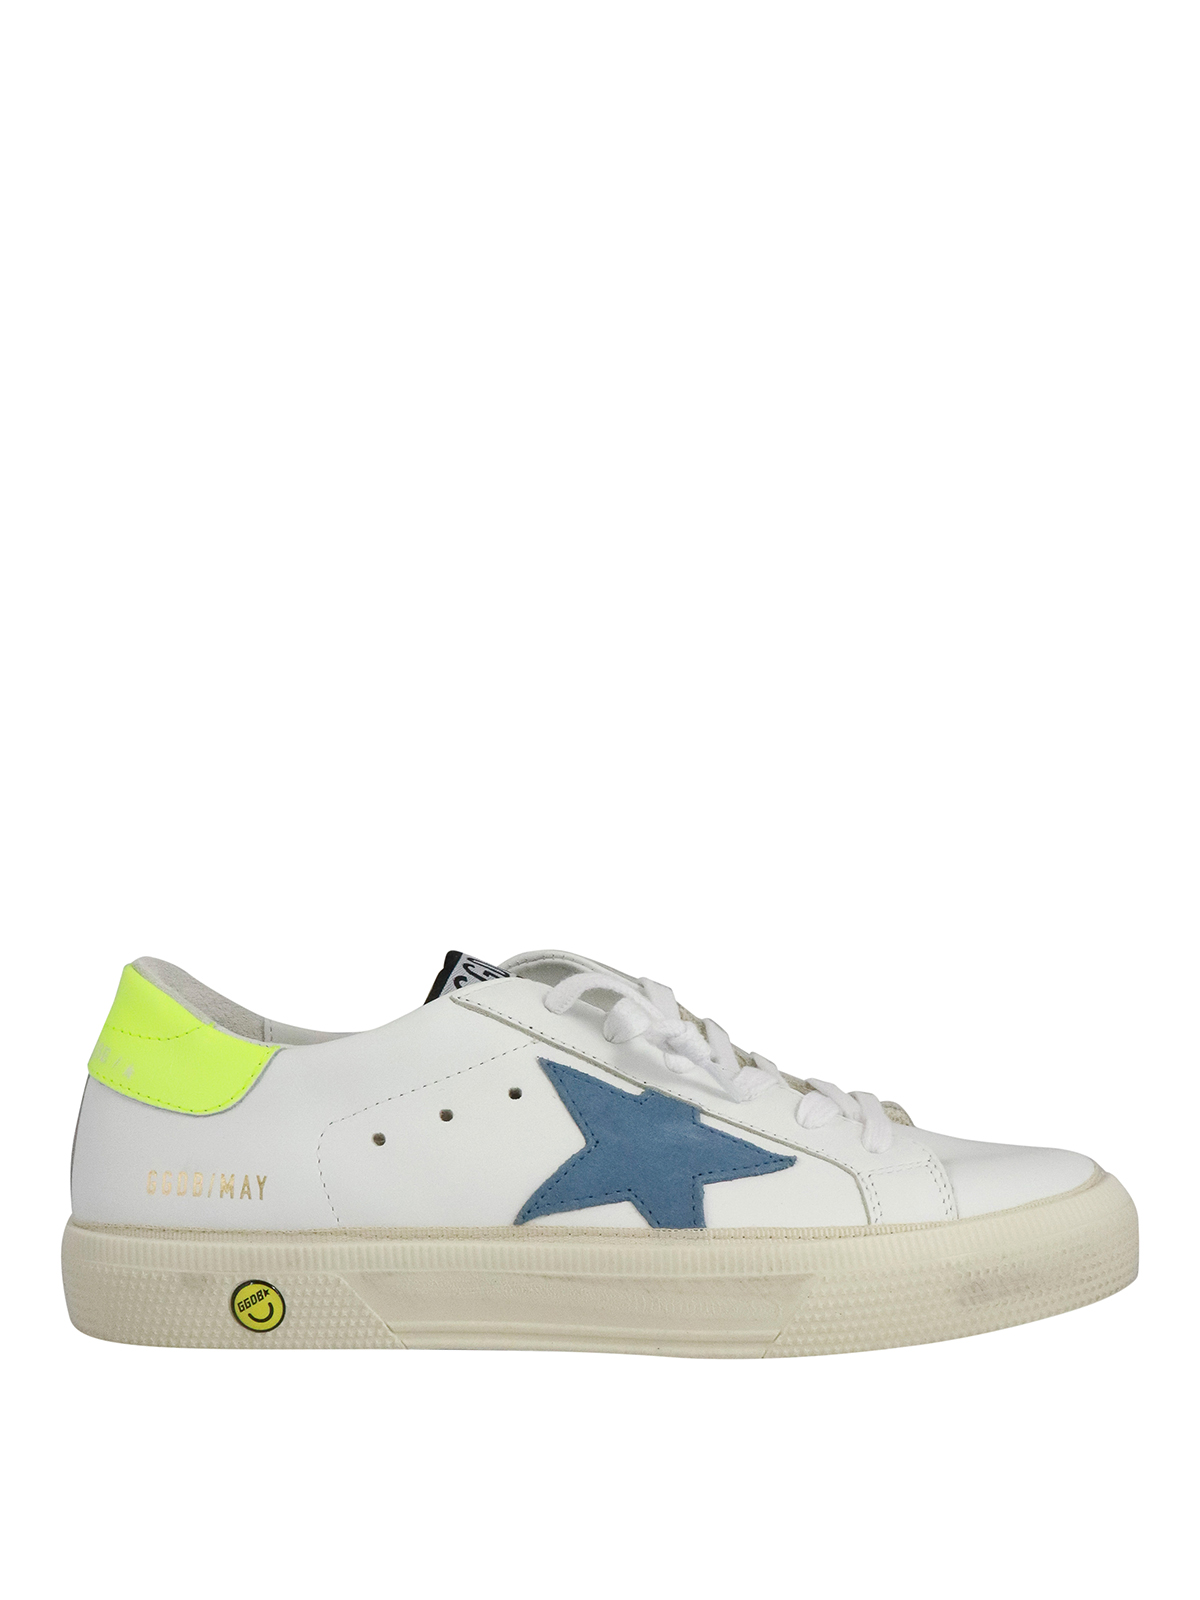 Golden Goose Kids' May Sneakers In White